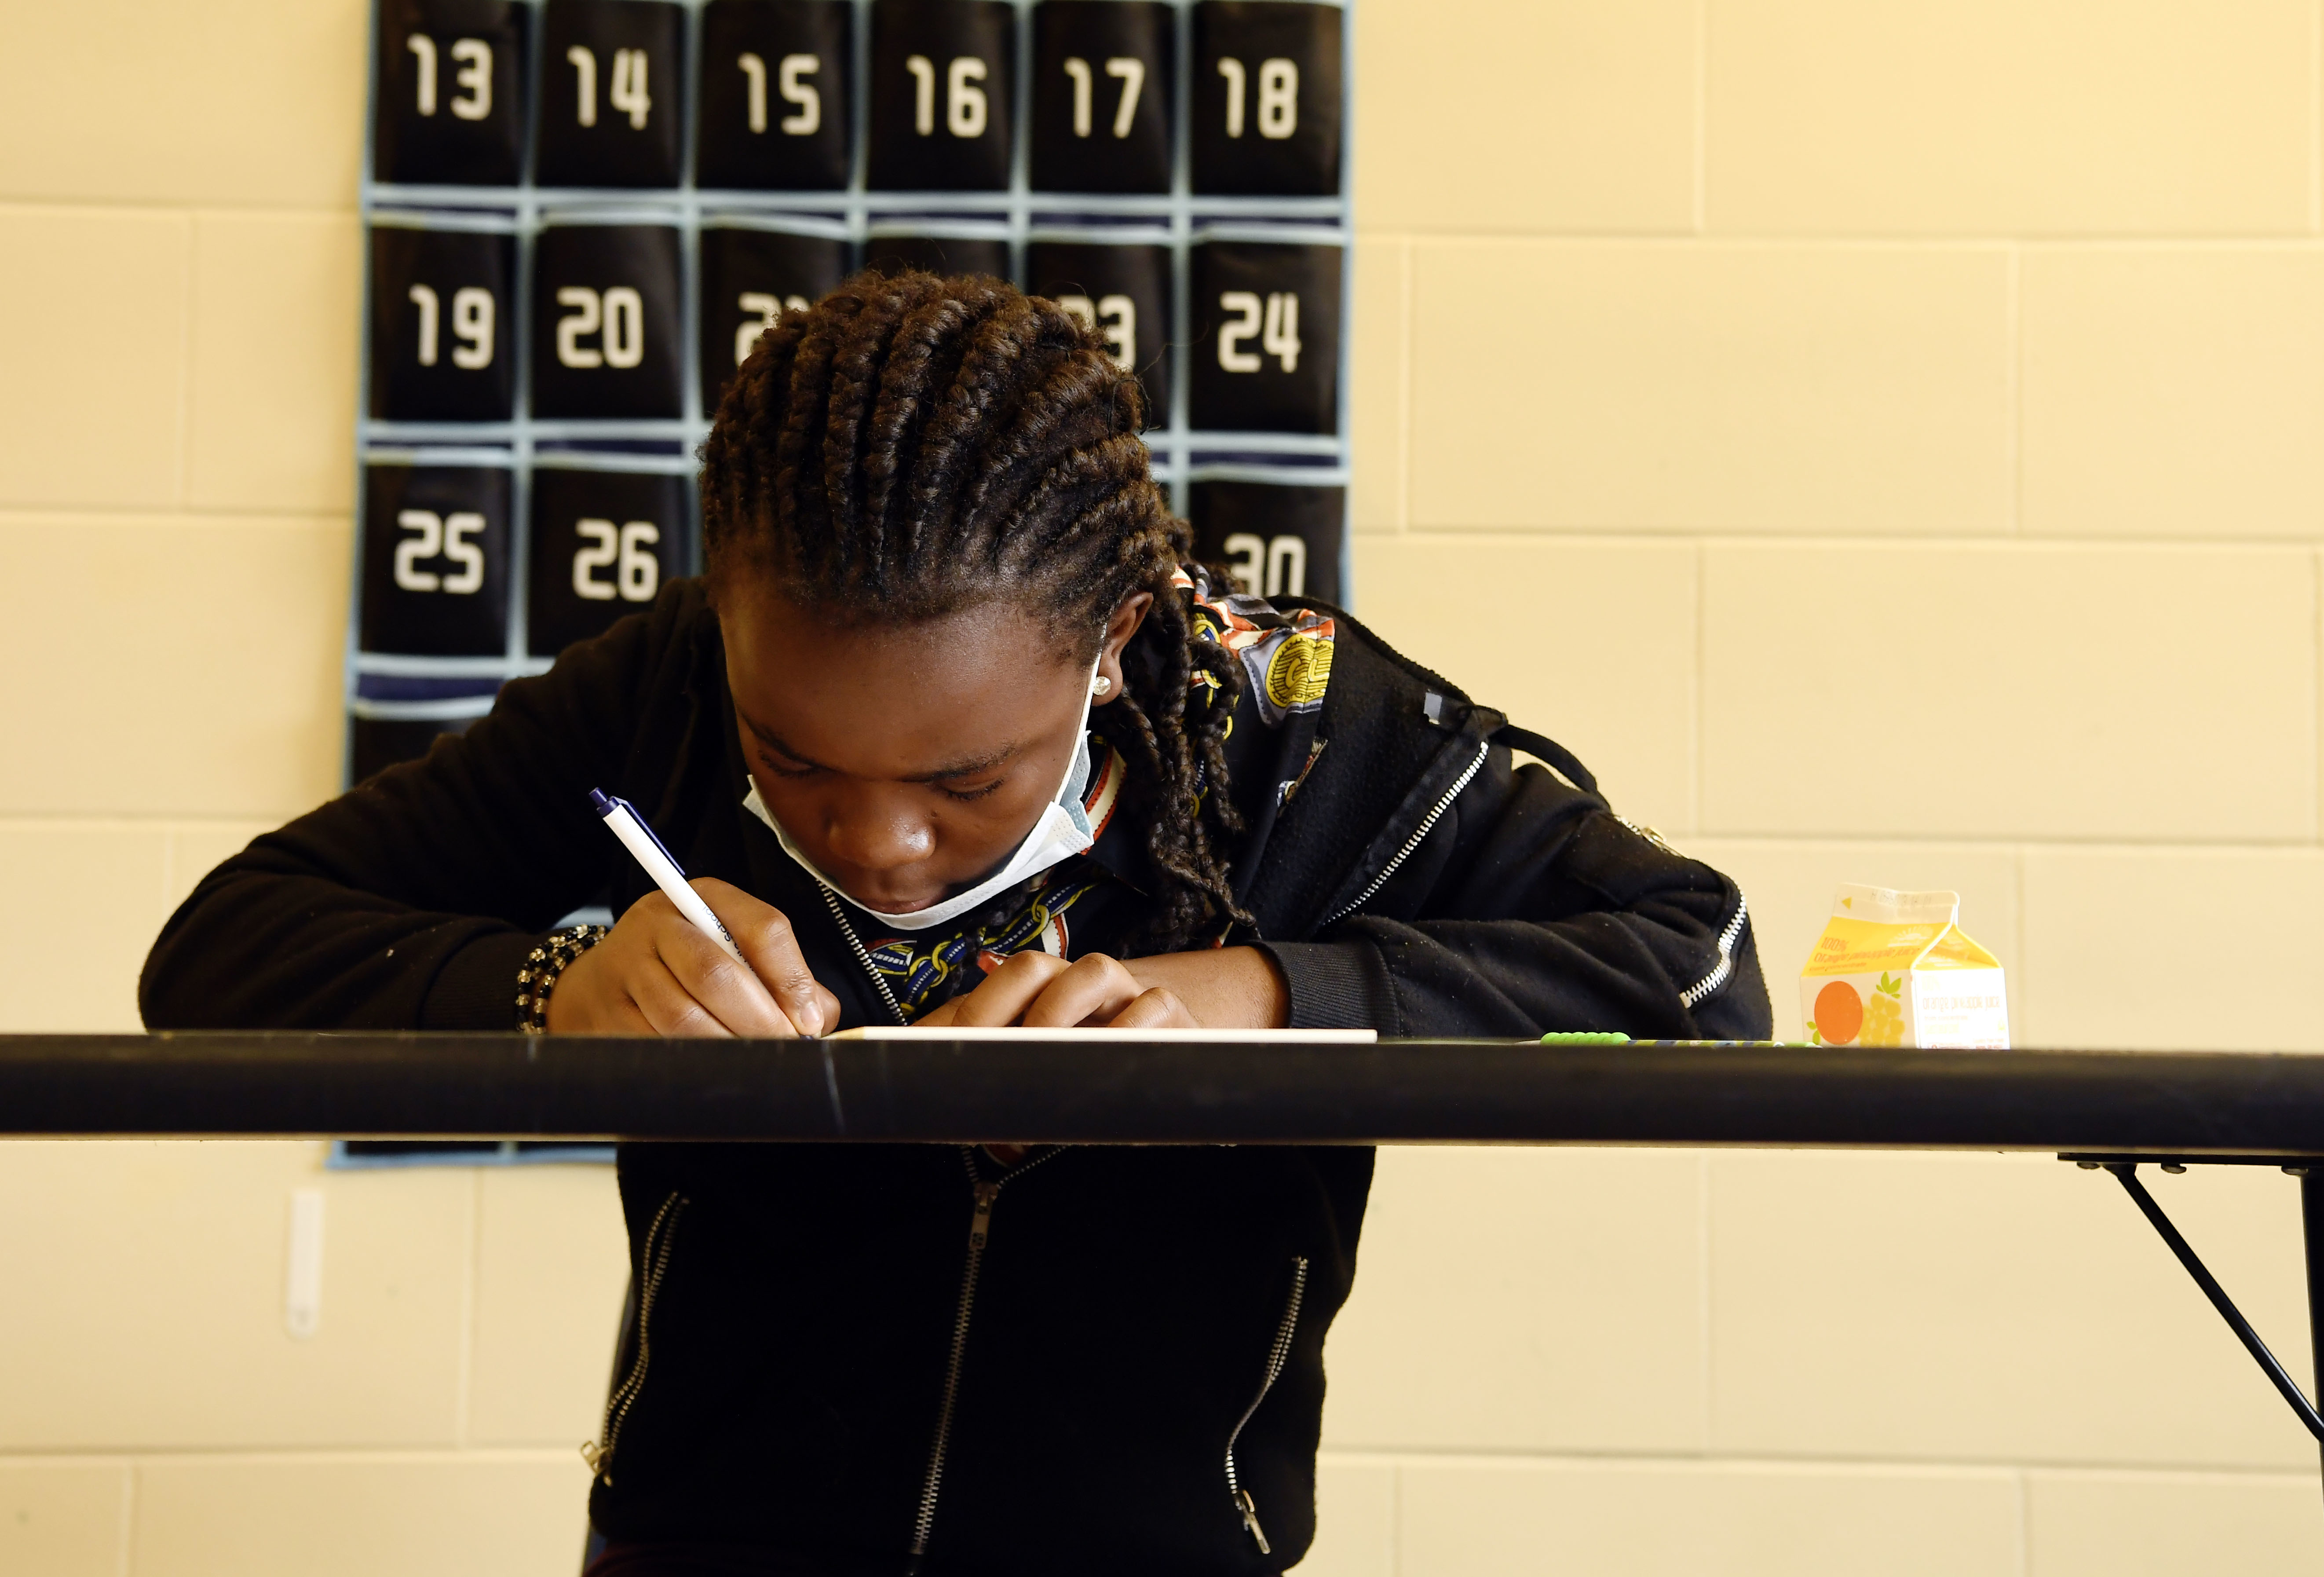 Student writing at a table in a classroom.